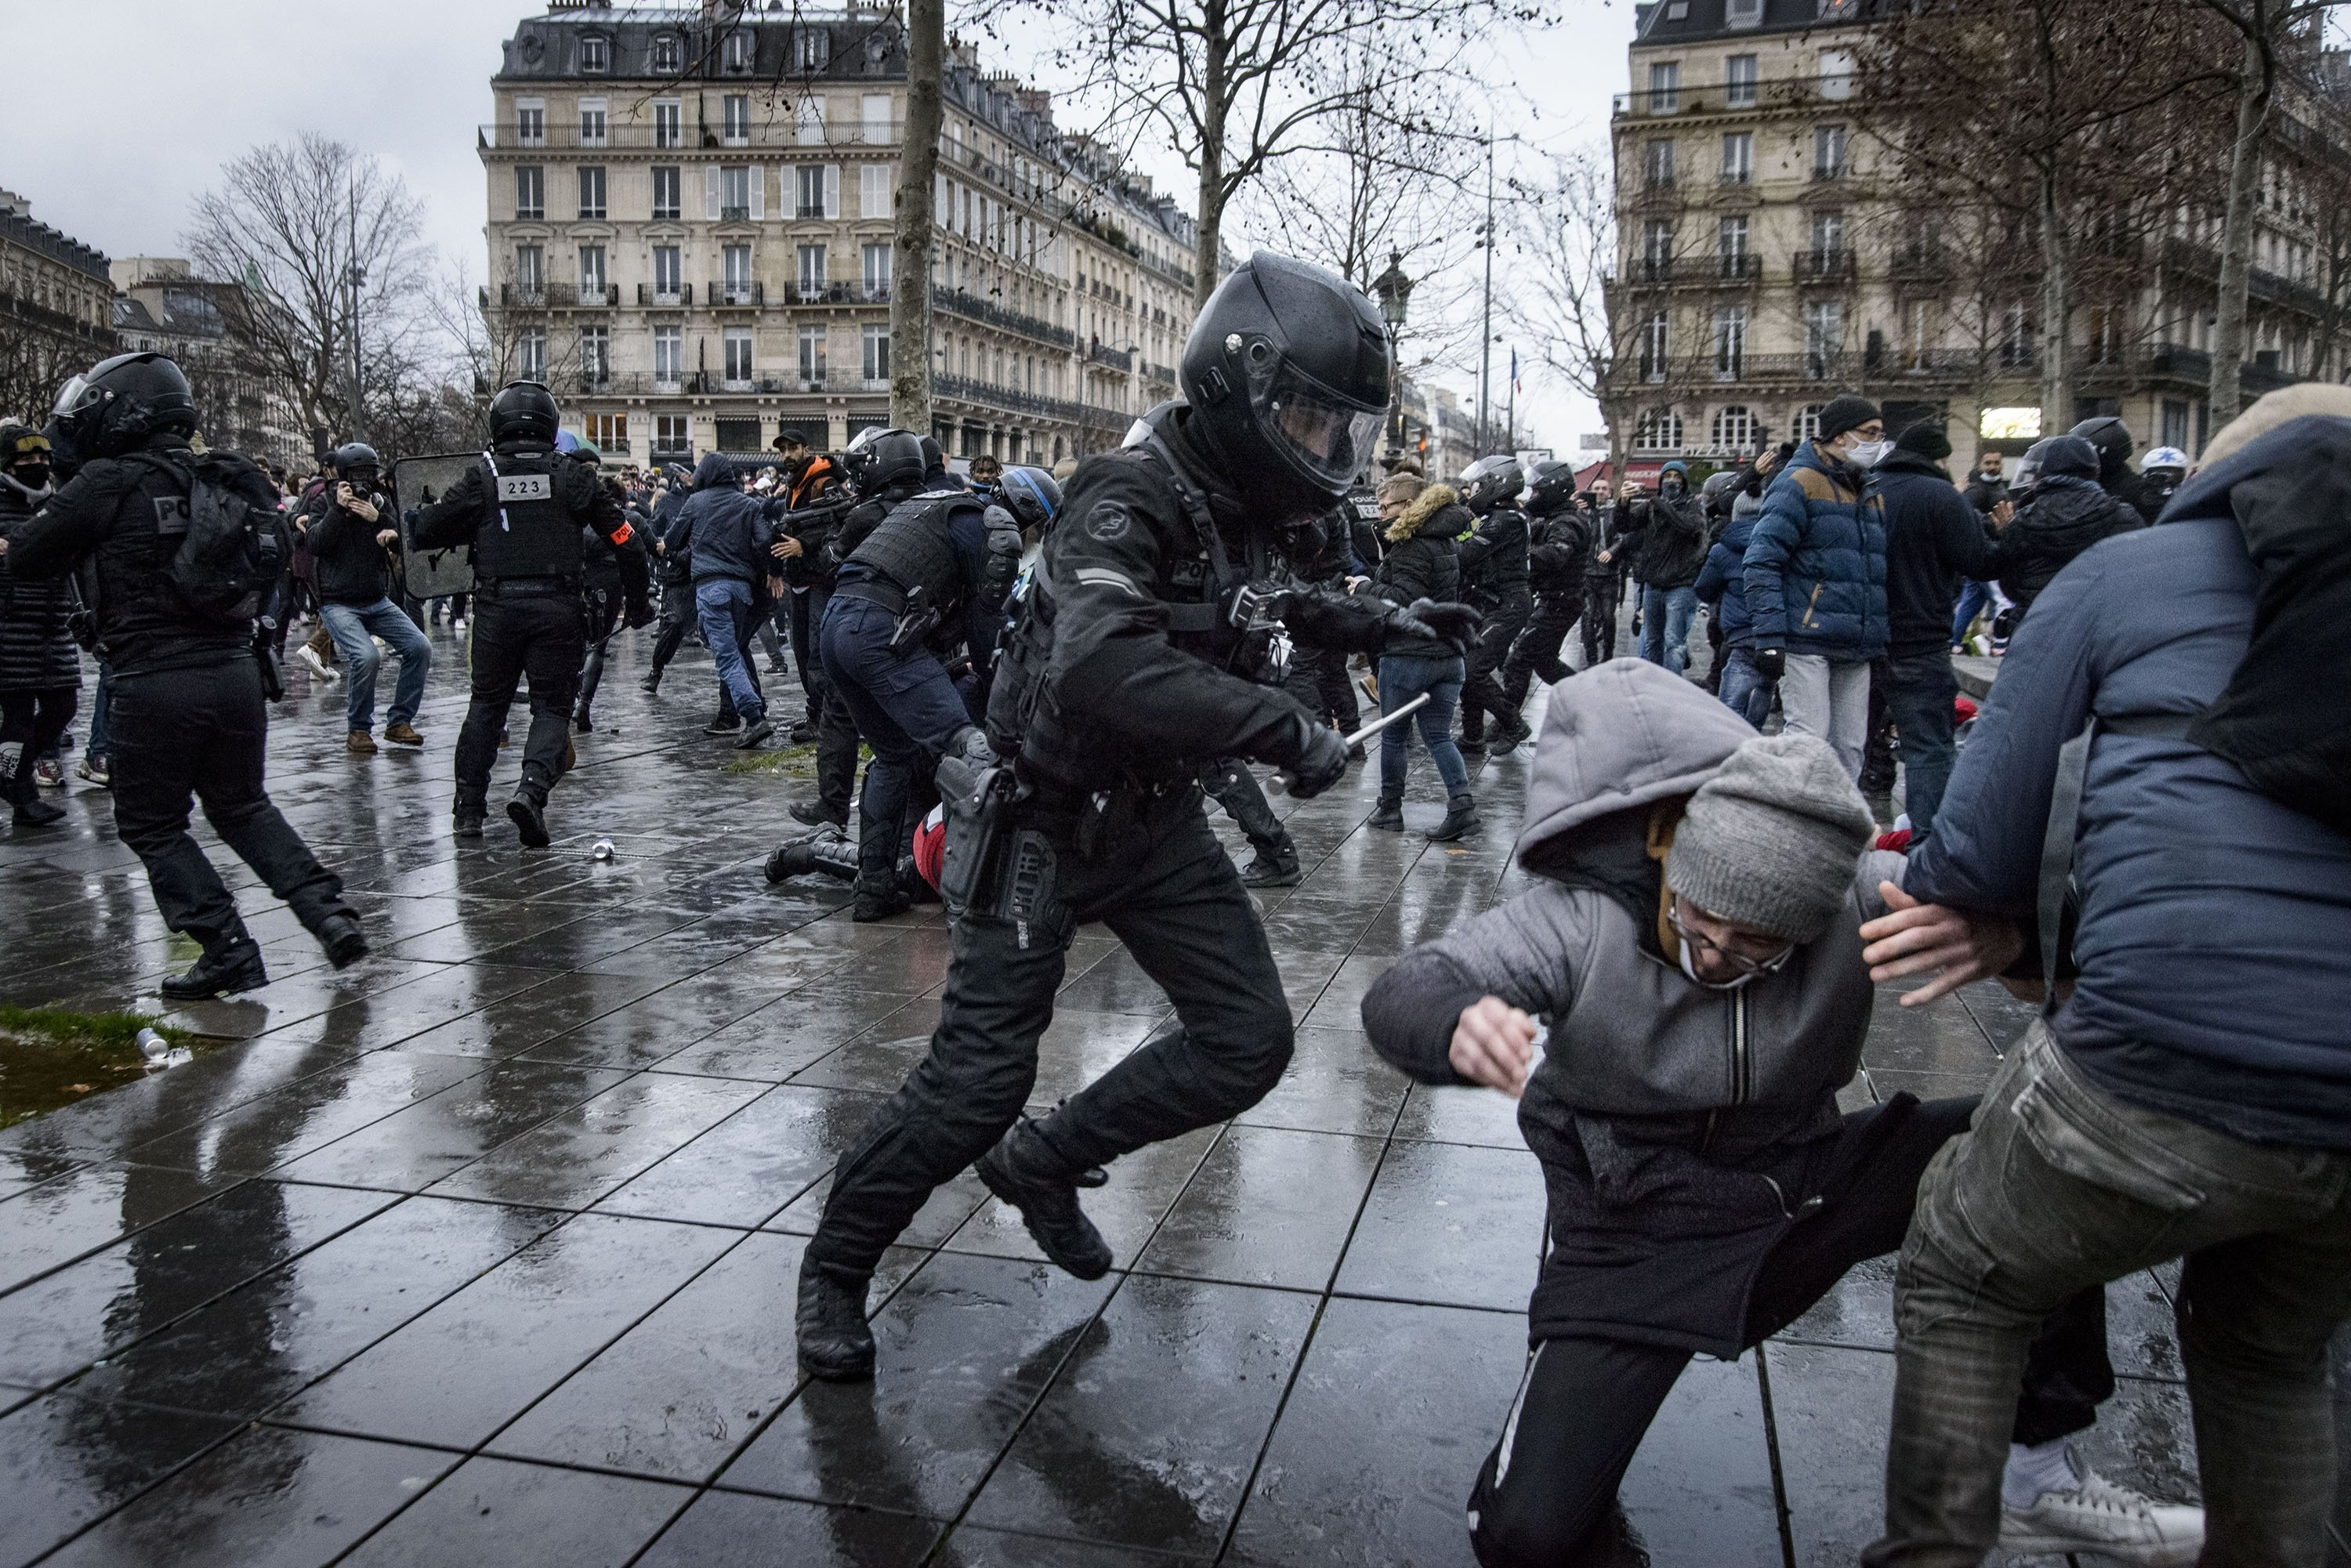 Police violence in France as protests over security bill continue   Daily  Sabah